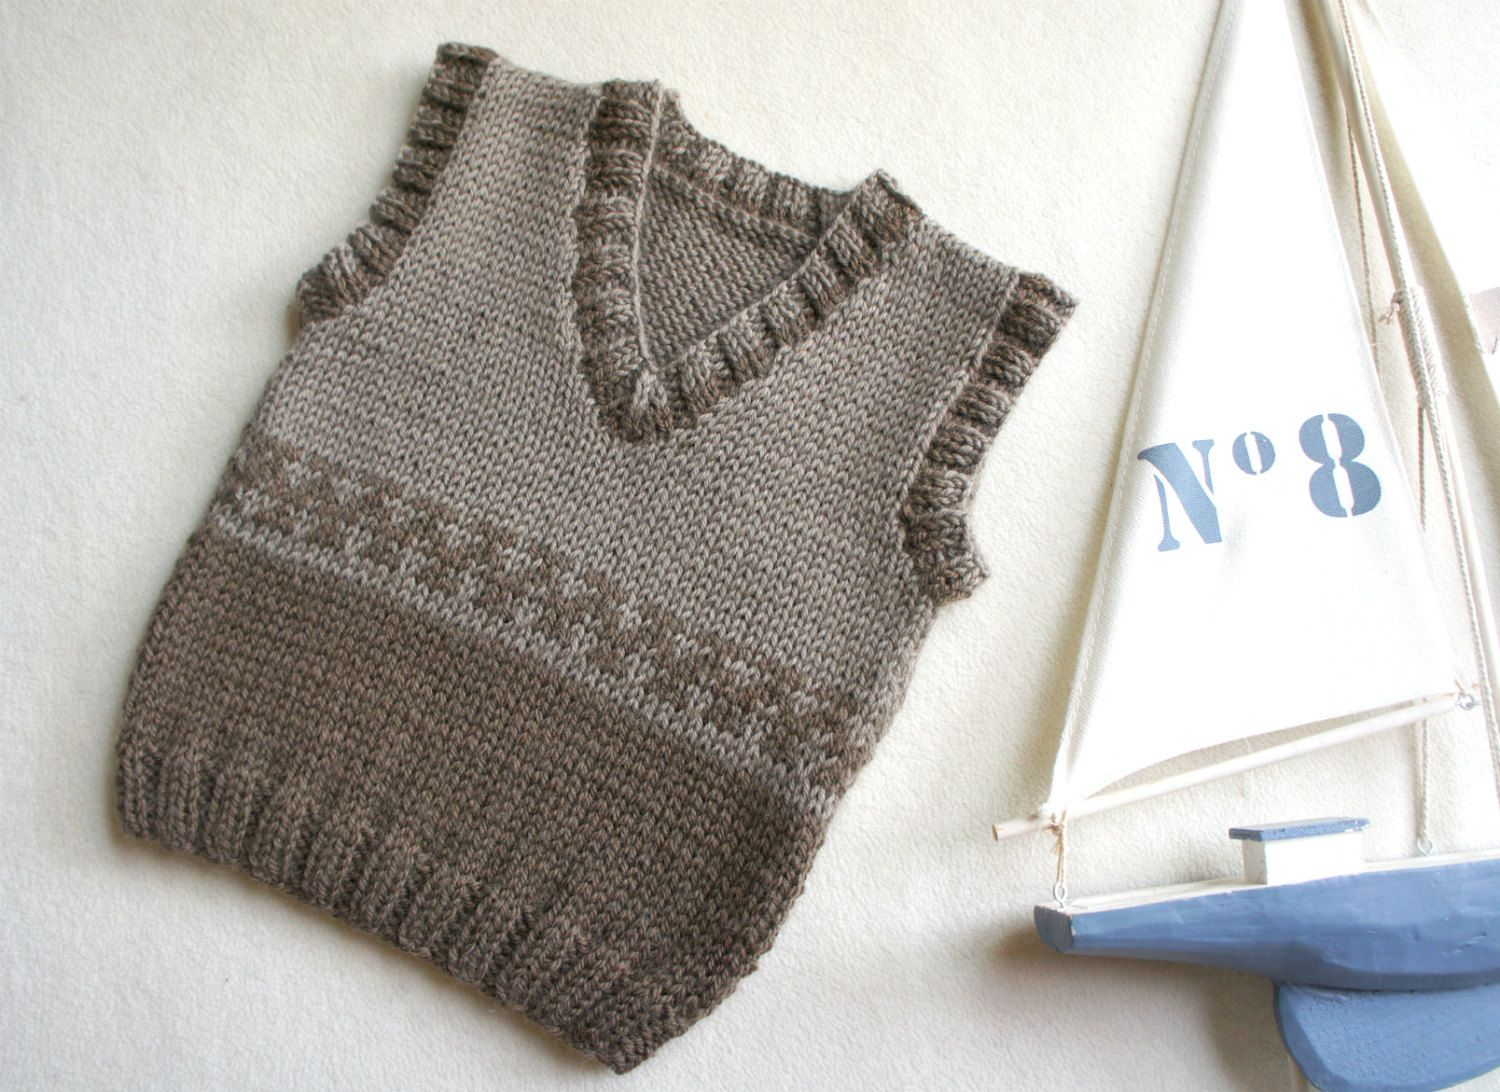 Knit baby vest, wool baby tank, knitted brown ves, boys hand knit vest